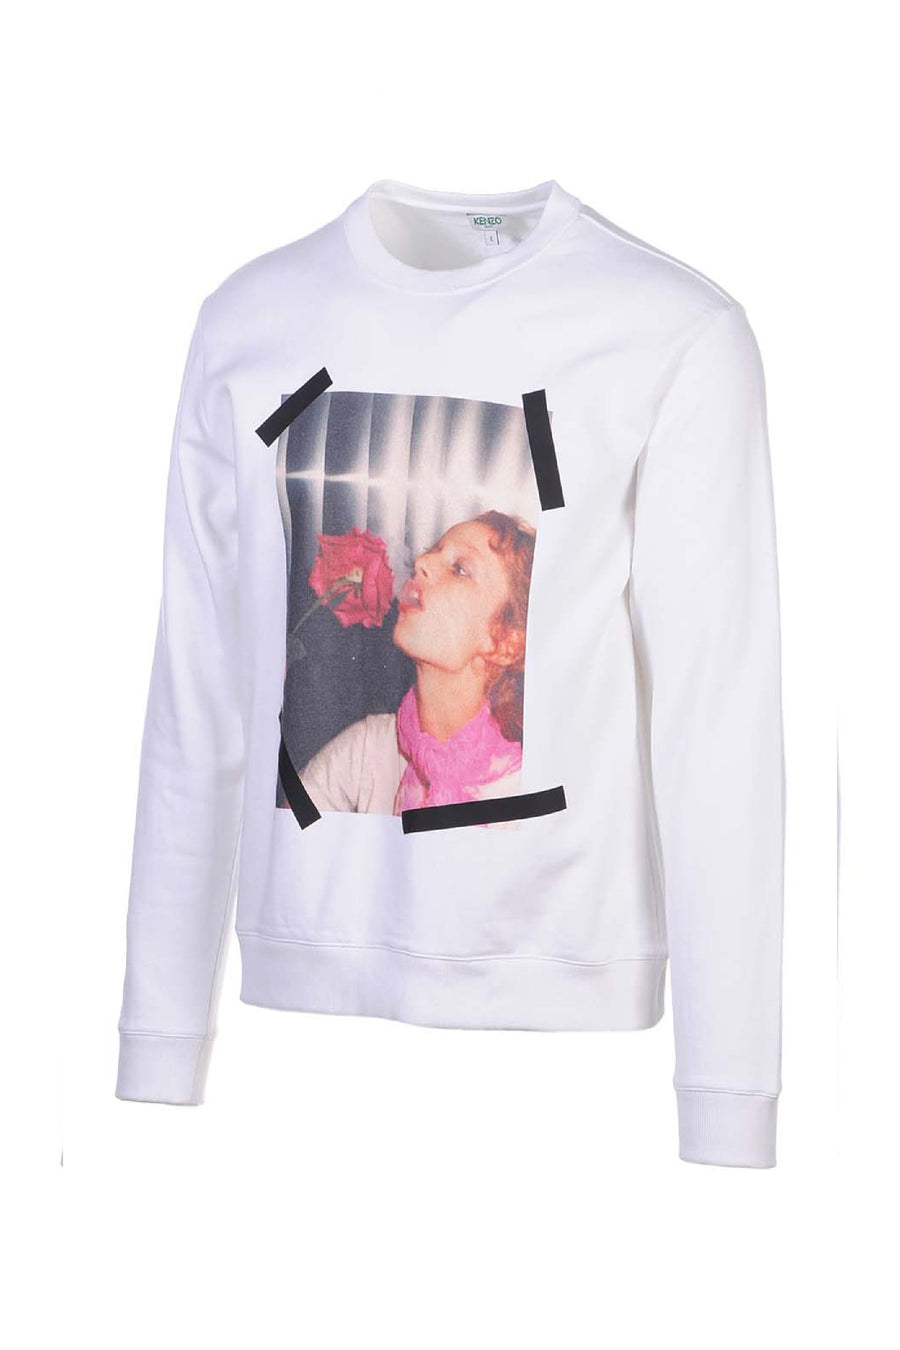 Girl With Rose Sweatshirt Kenzo Paris Designer Long Sleeves Sweater Fashion